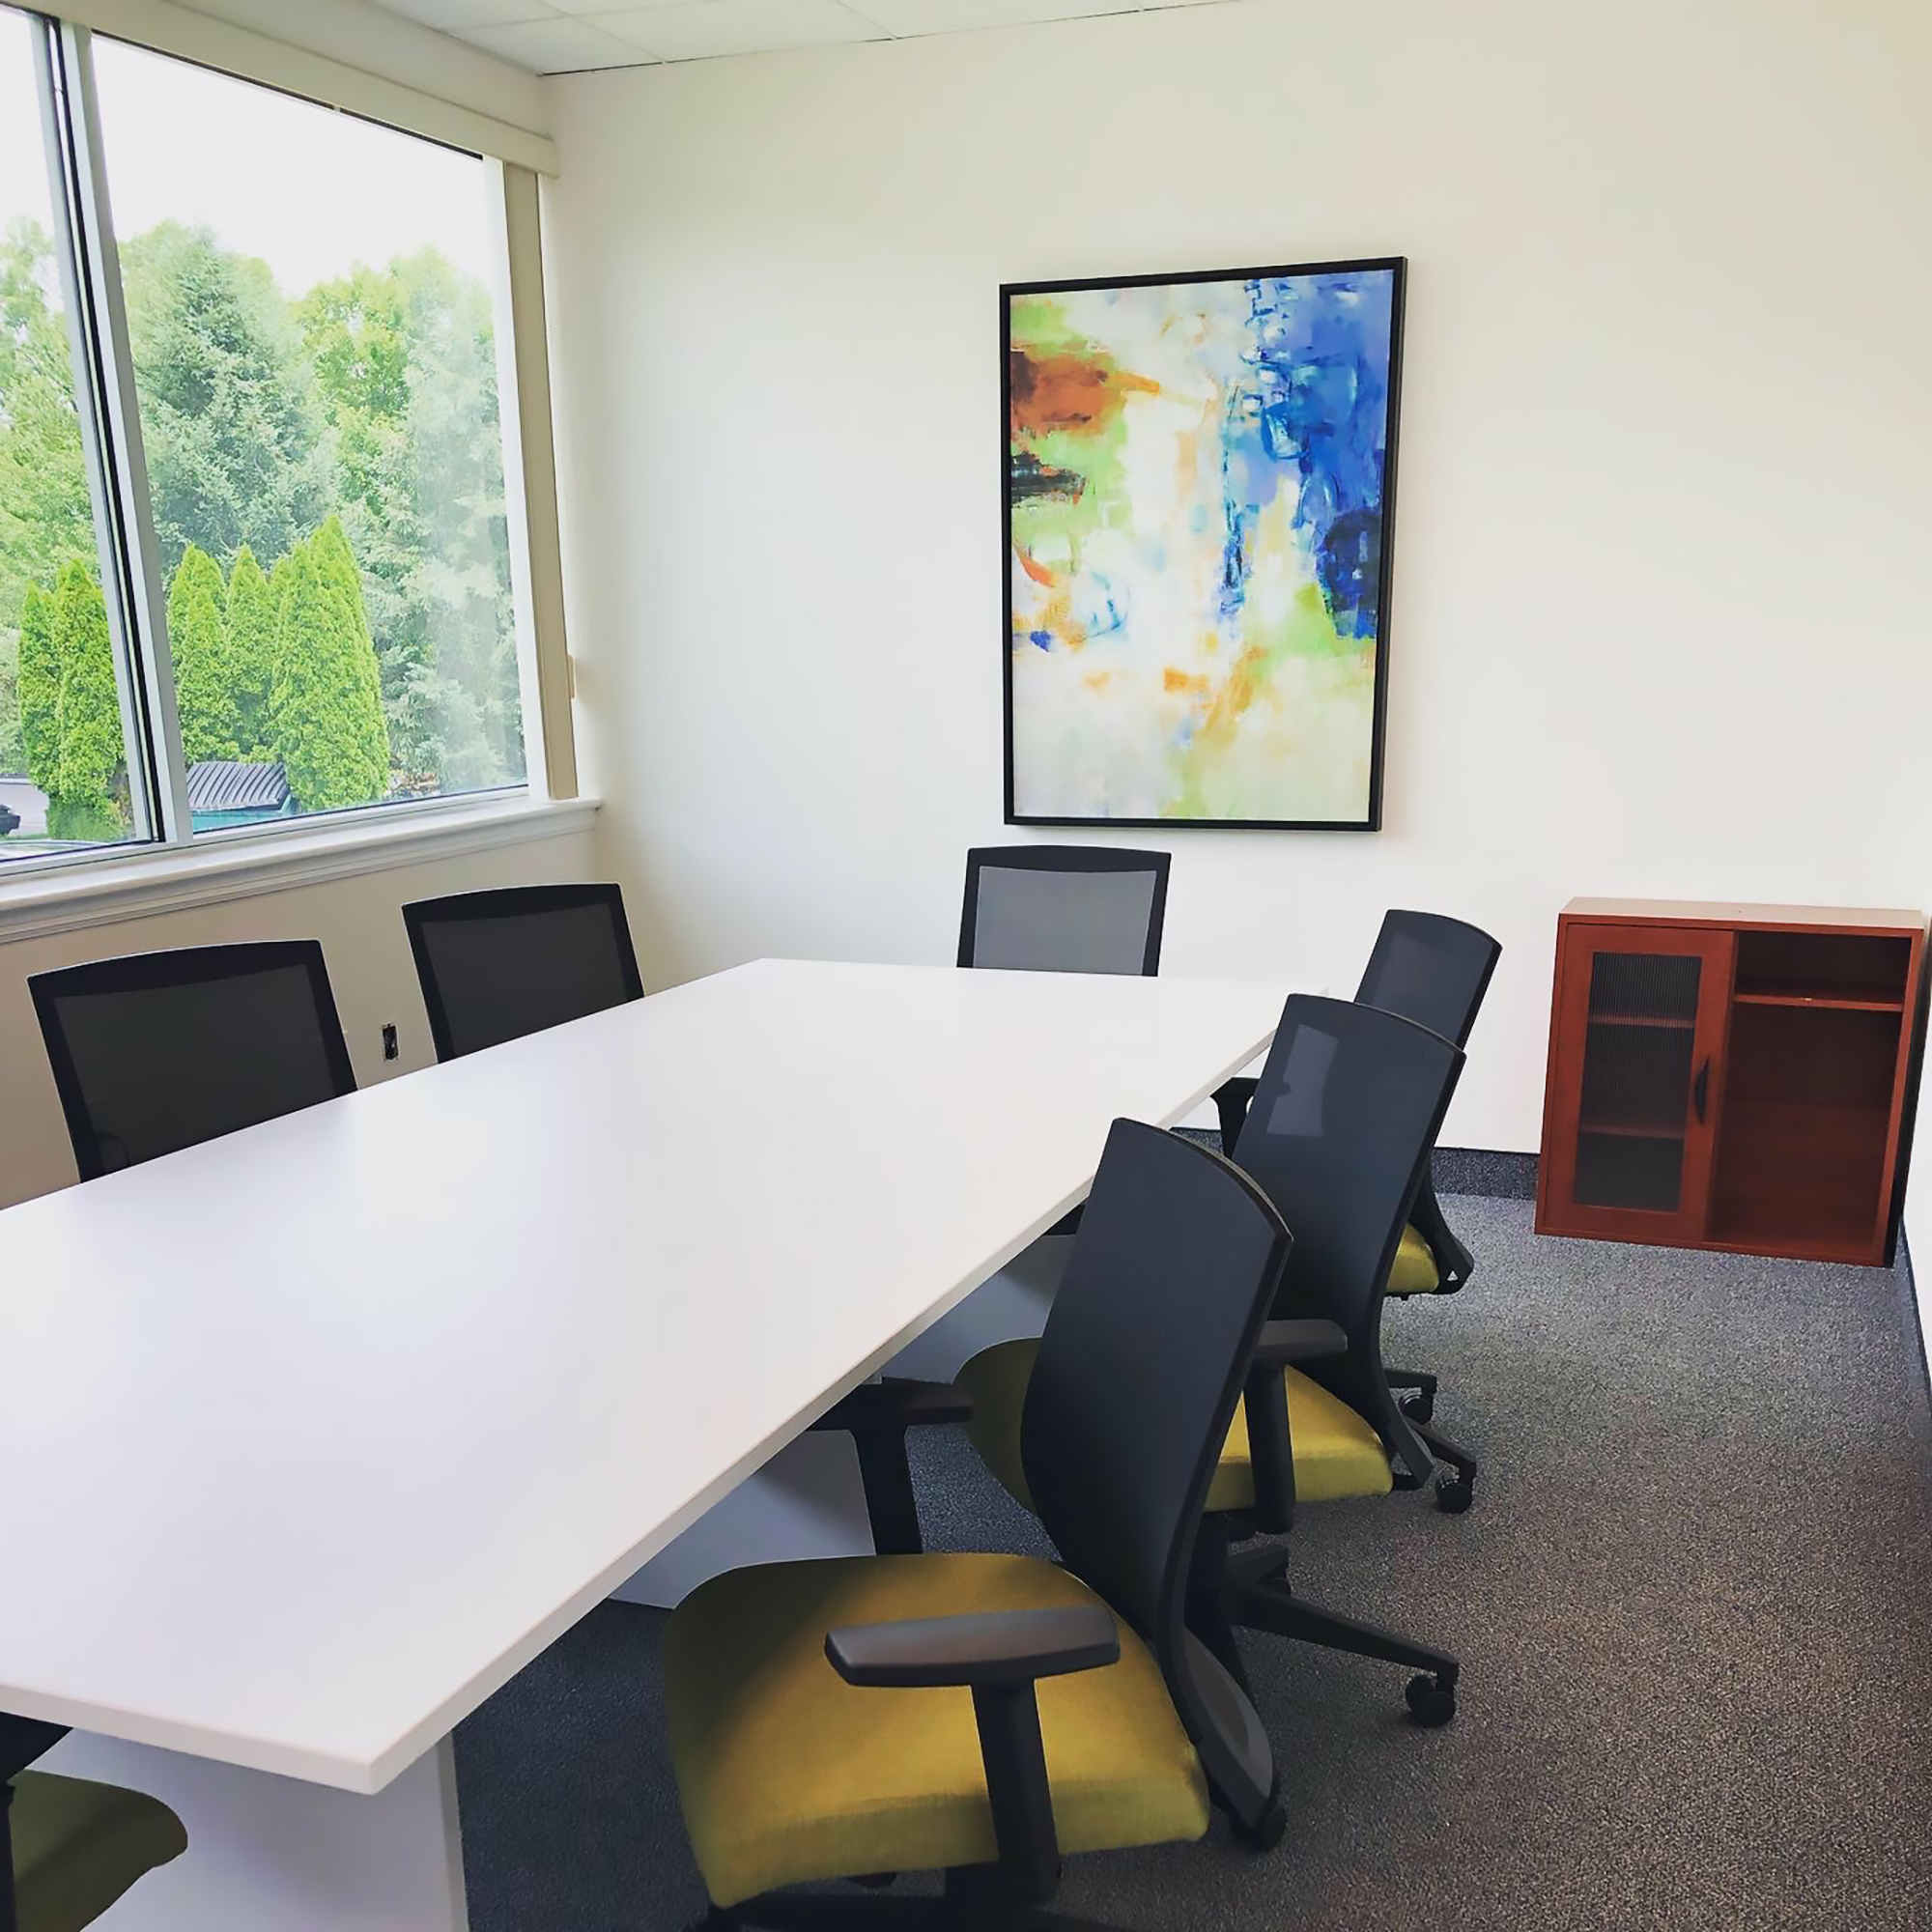 Blending art with the natural beauty outside their window enhances this client's conference room.